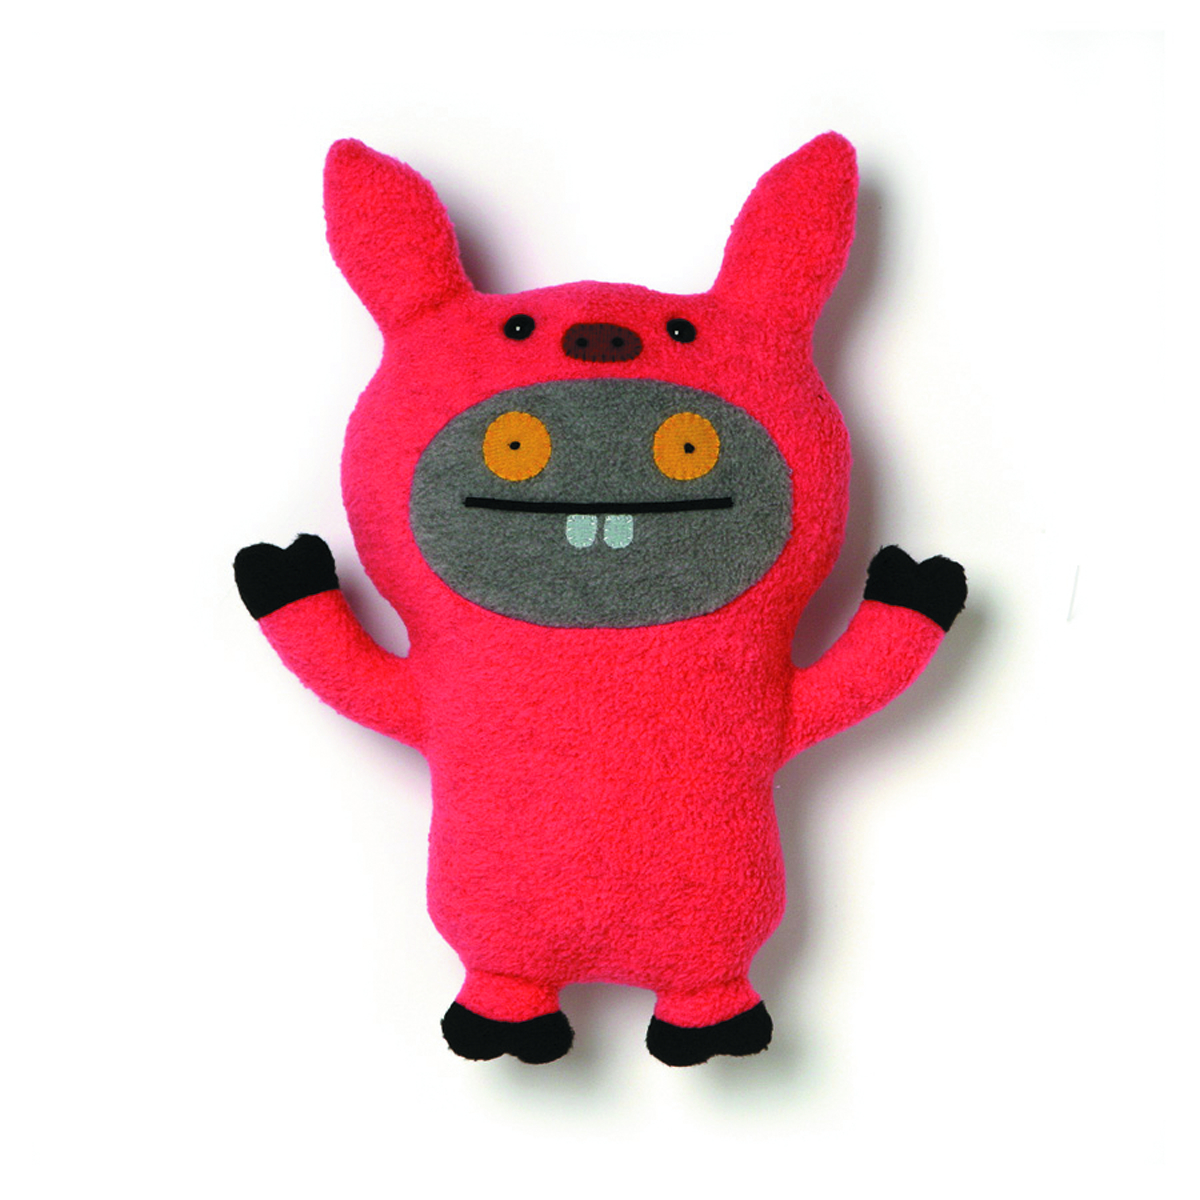 UGLYDOLL UGLY ANIMALS BABO PIG PLUSH